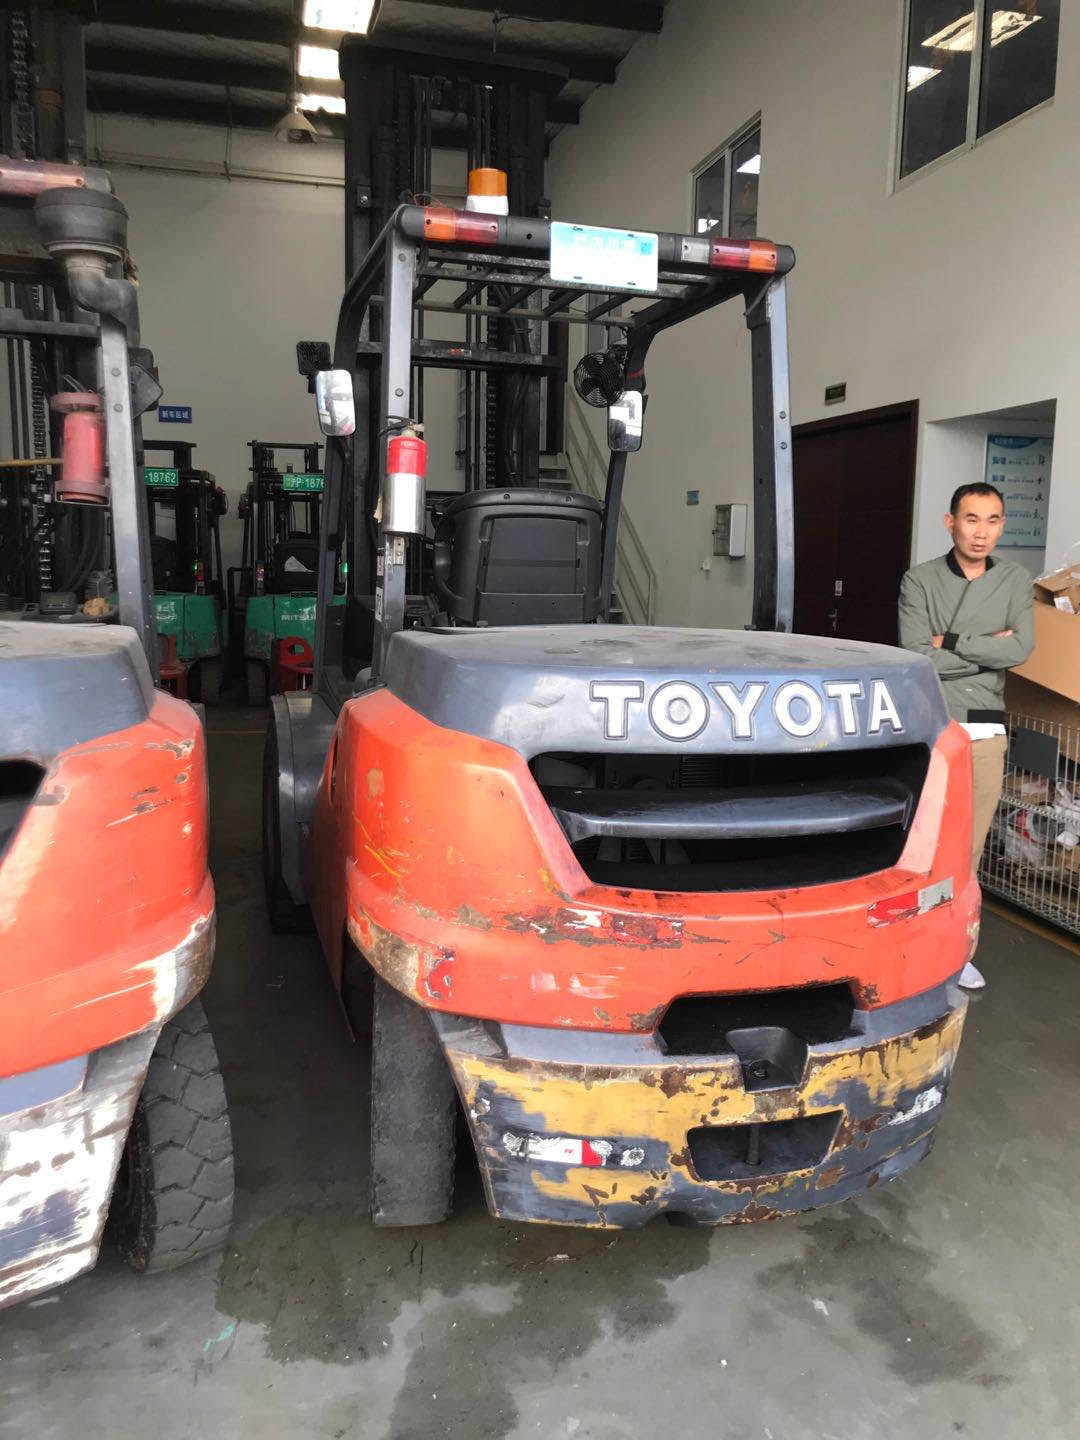 5Ton Toyota Used forklifts 2 pcs for sale !!!